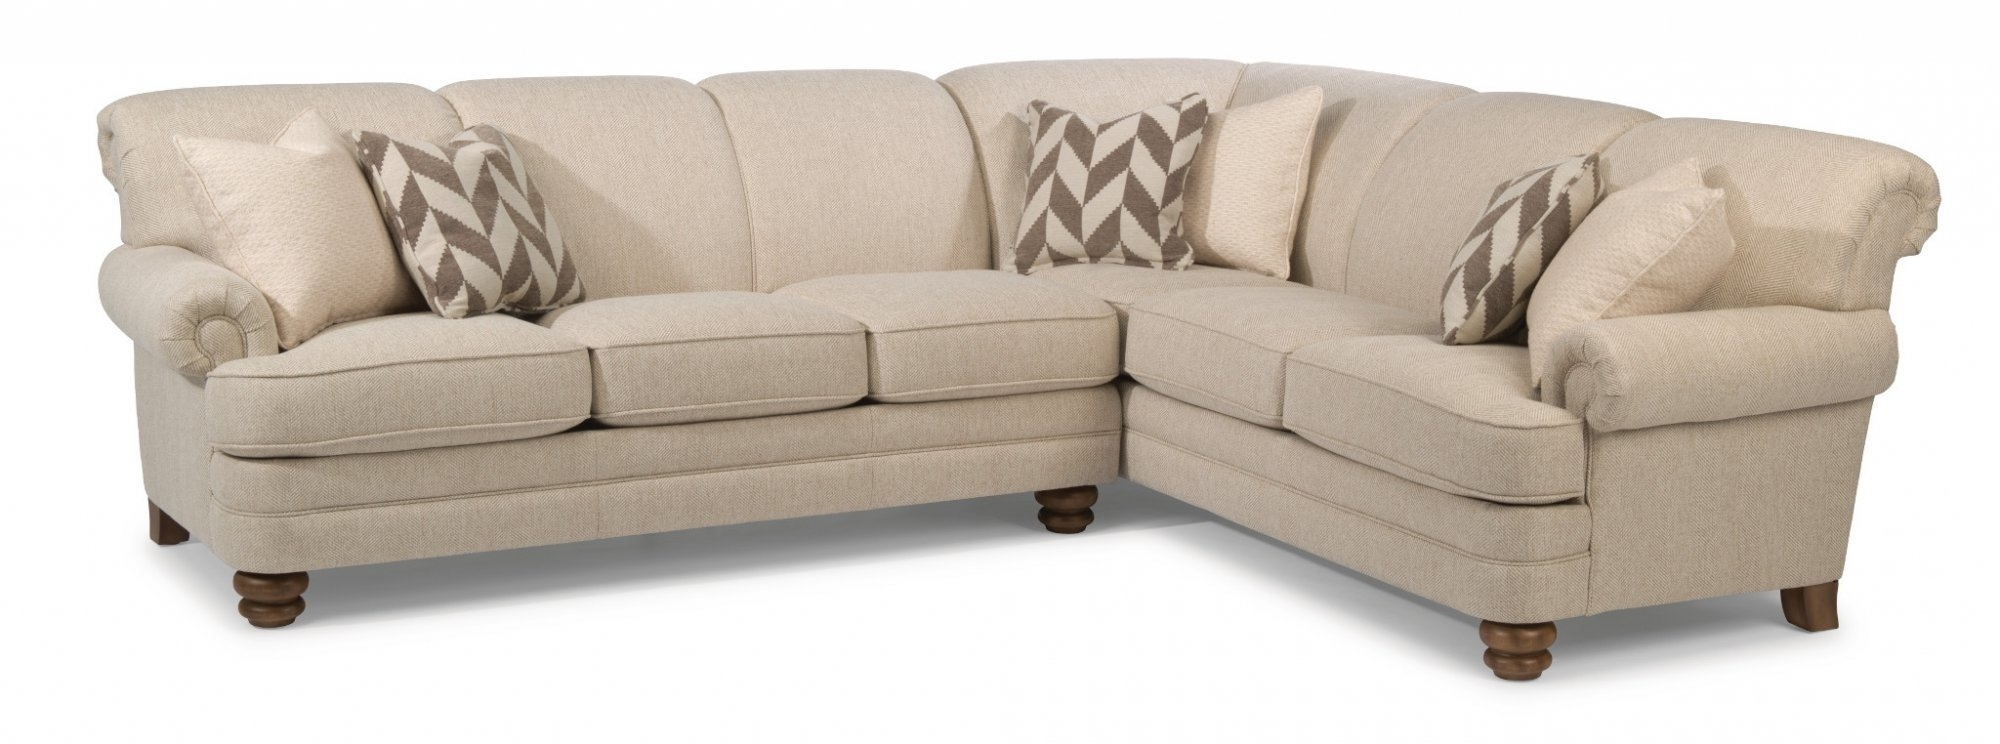 Well Liked Best Sectional Sofa With Nailhead Trim 89 For Your Best Sleeper Pertaining To Sectional Sofas With Nailheads (View 20 of 20)